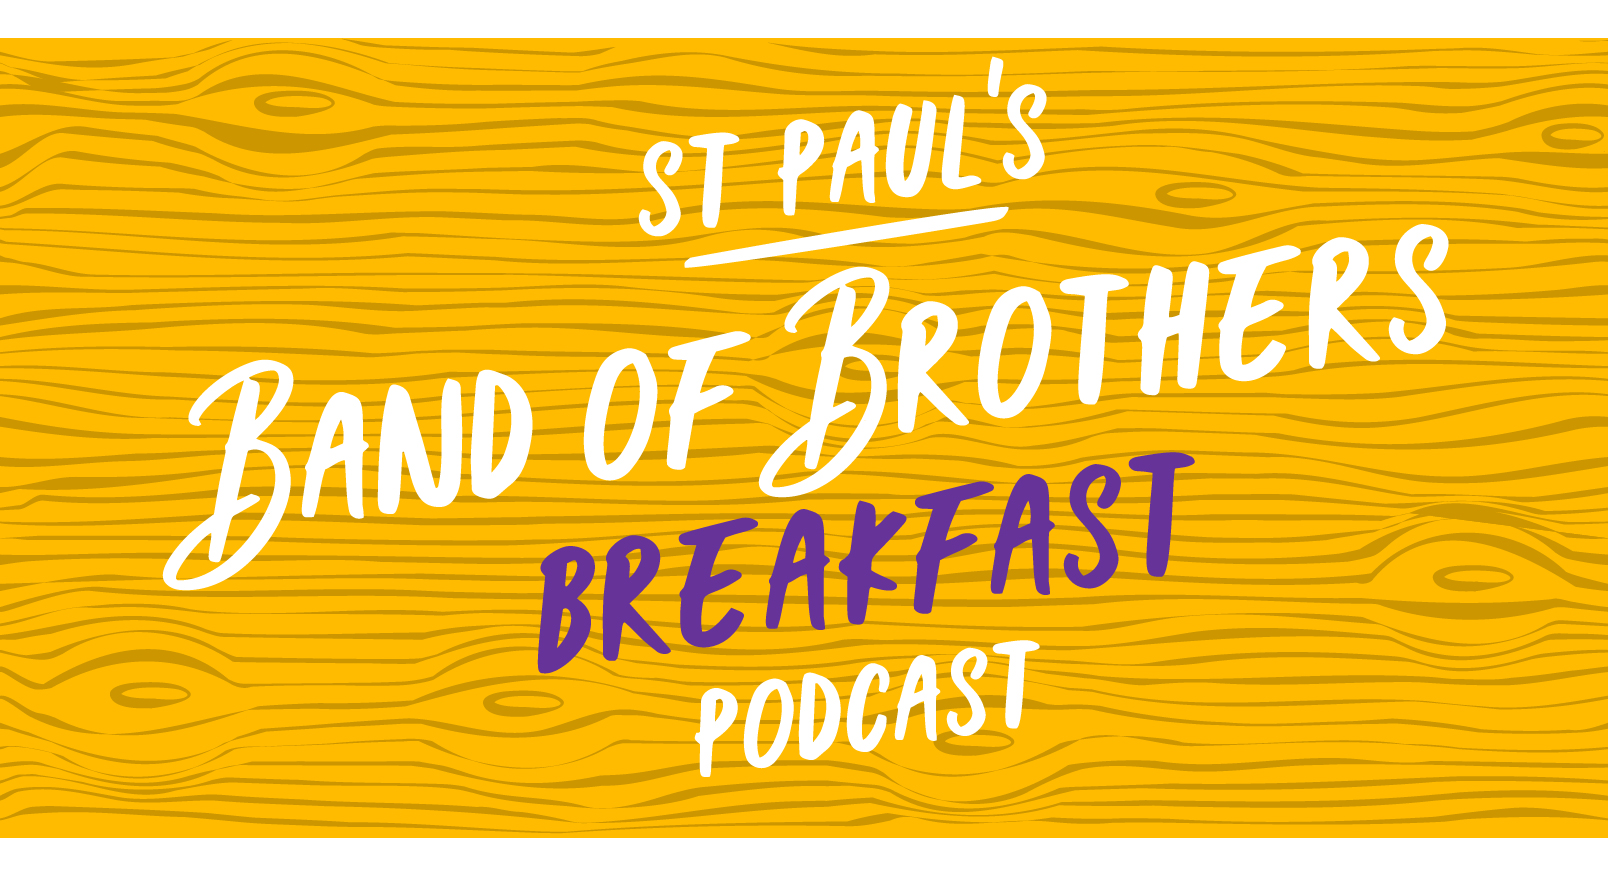 Band of Brothers Breakfast with Stephen Read